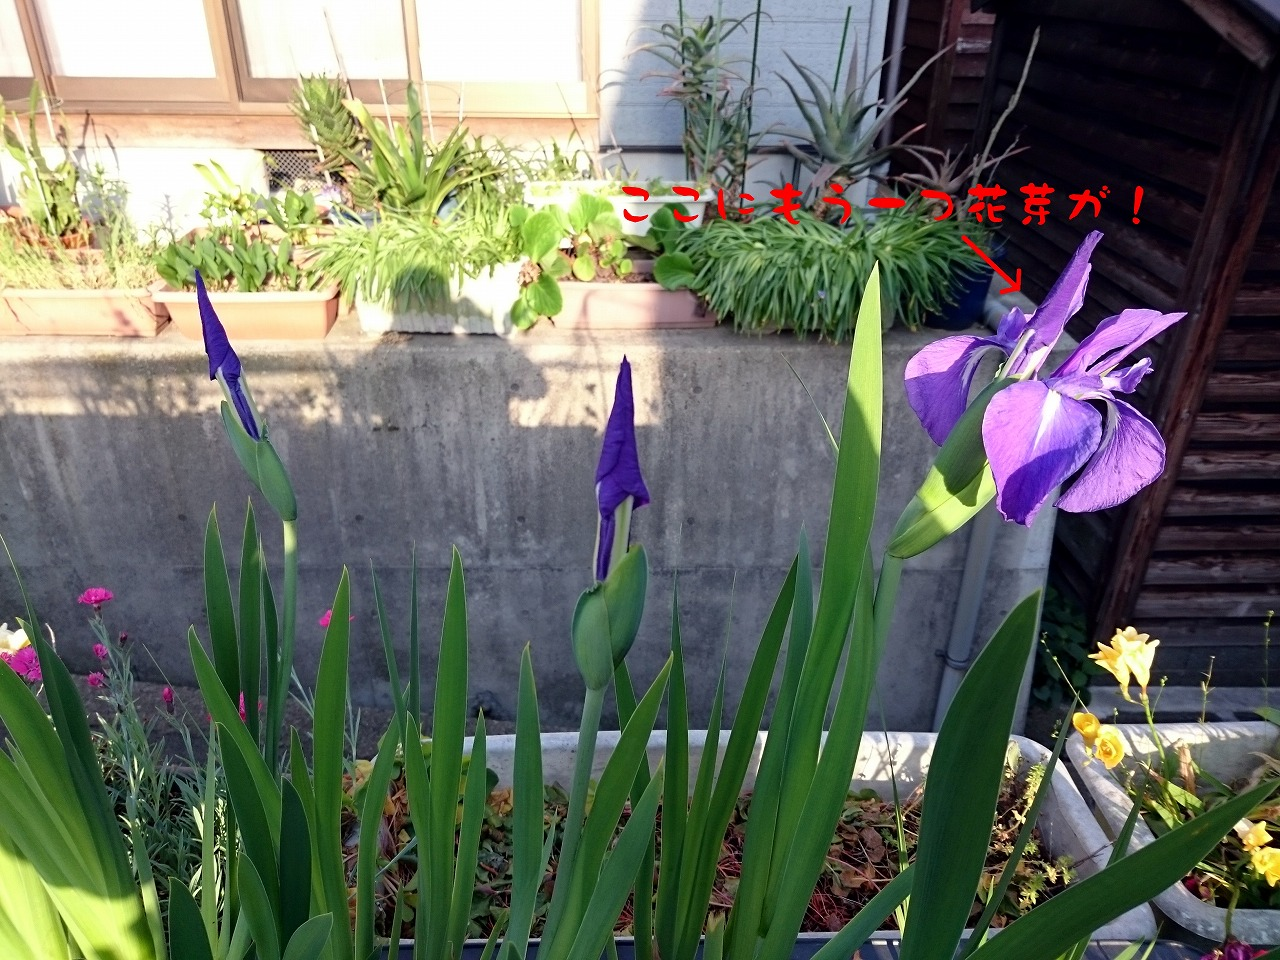 20150507-02_RabbitearIris-02.jpg